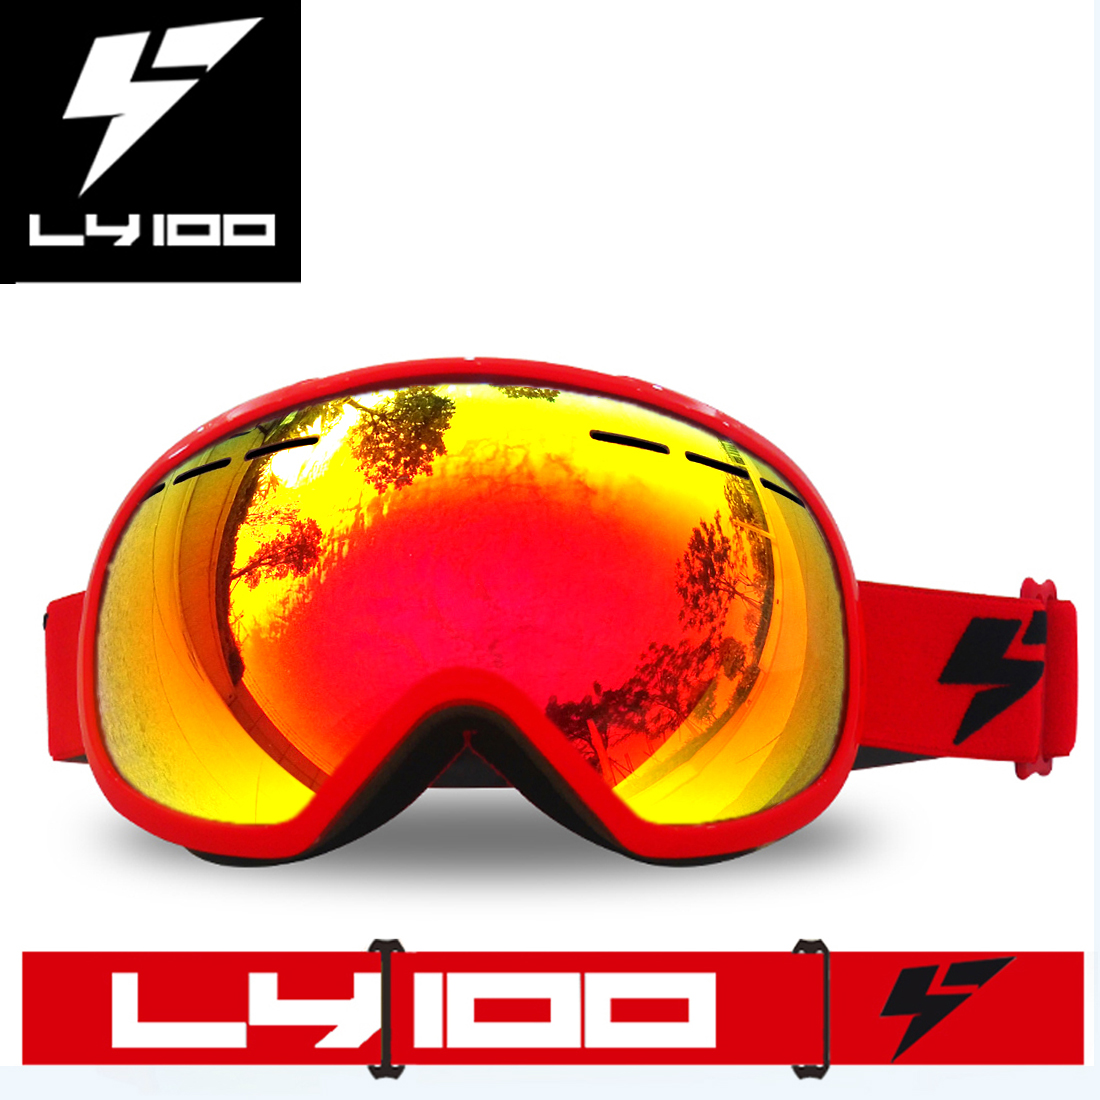 Anti-fog Snowboarding Ski Goggles OTG UV400 Protect Big Double Lens Red by